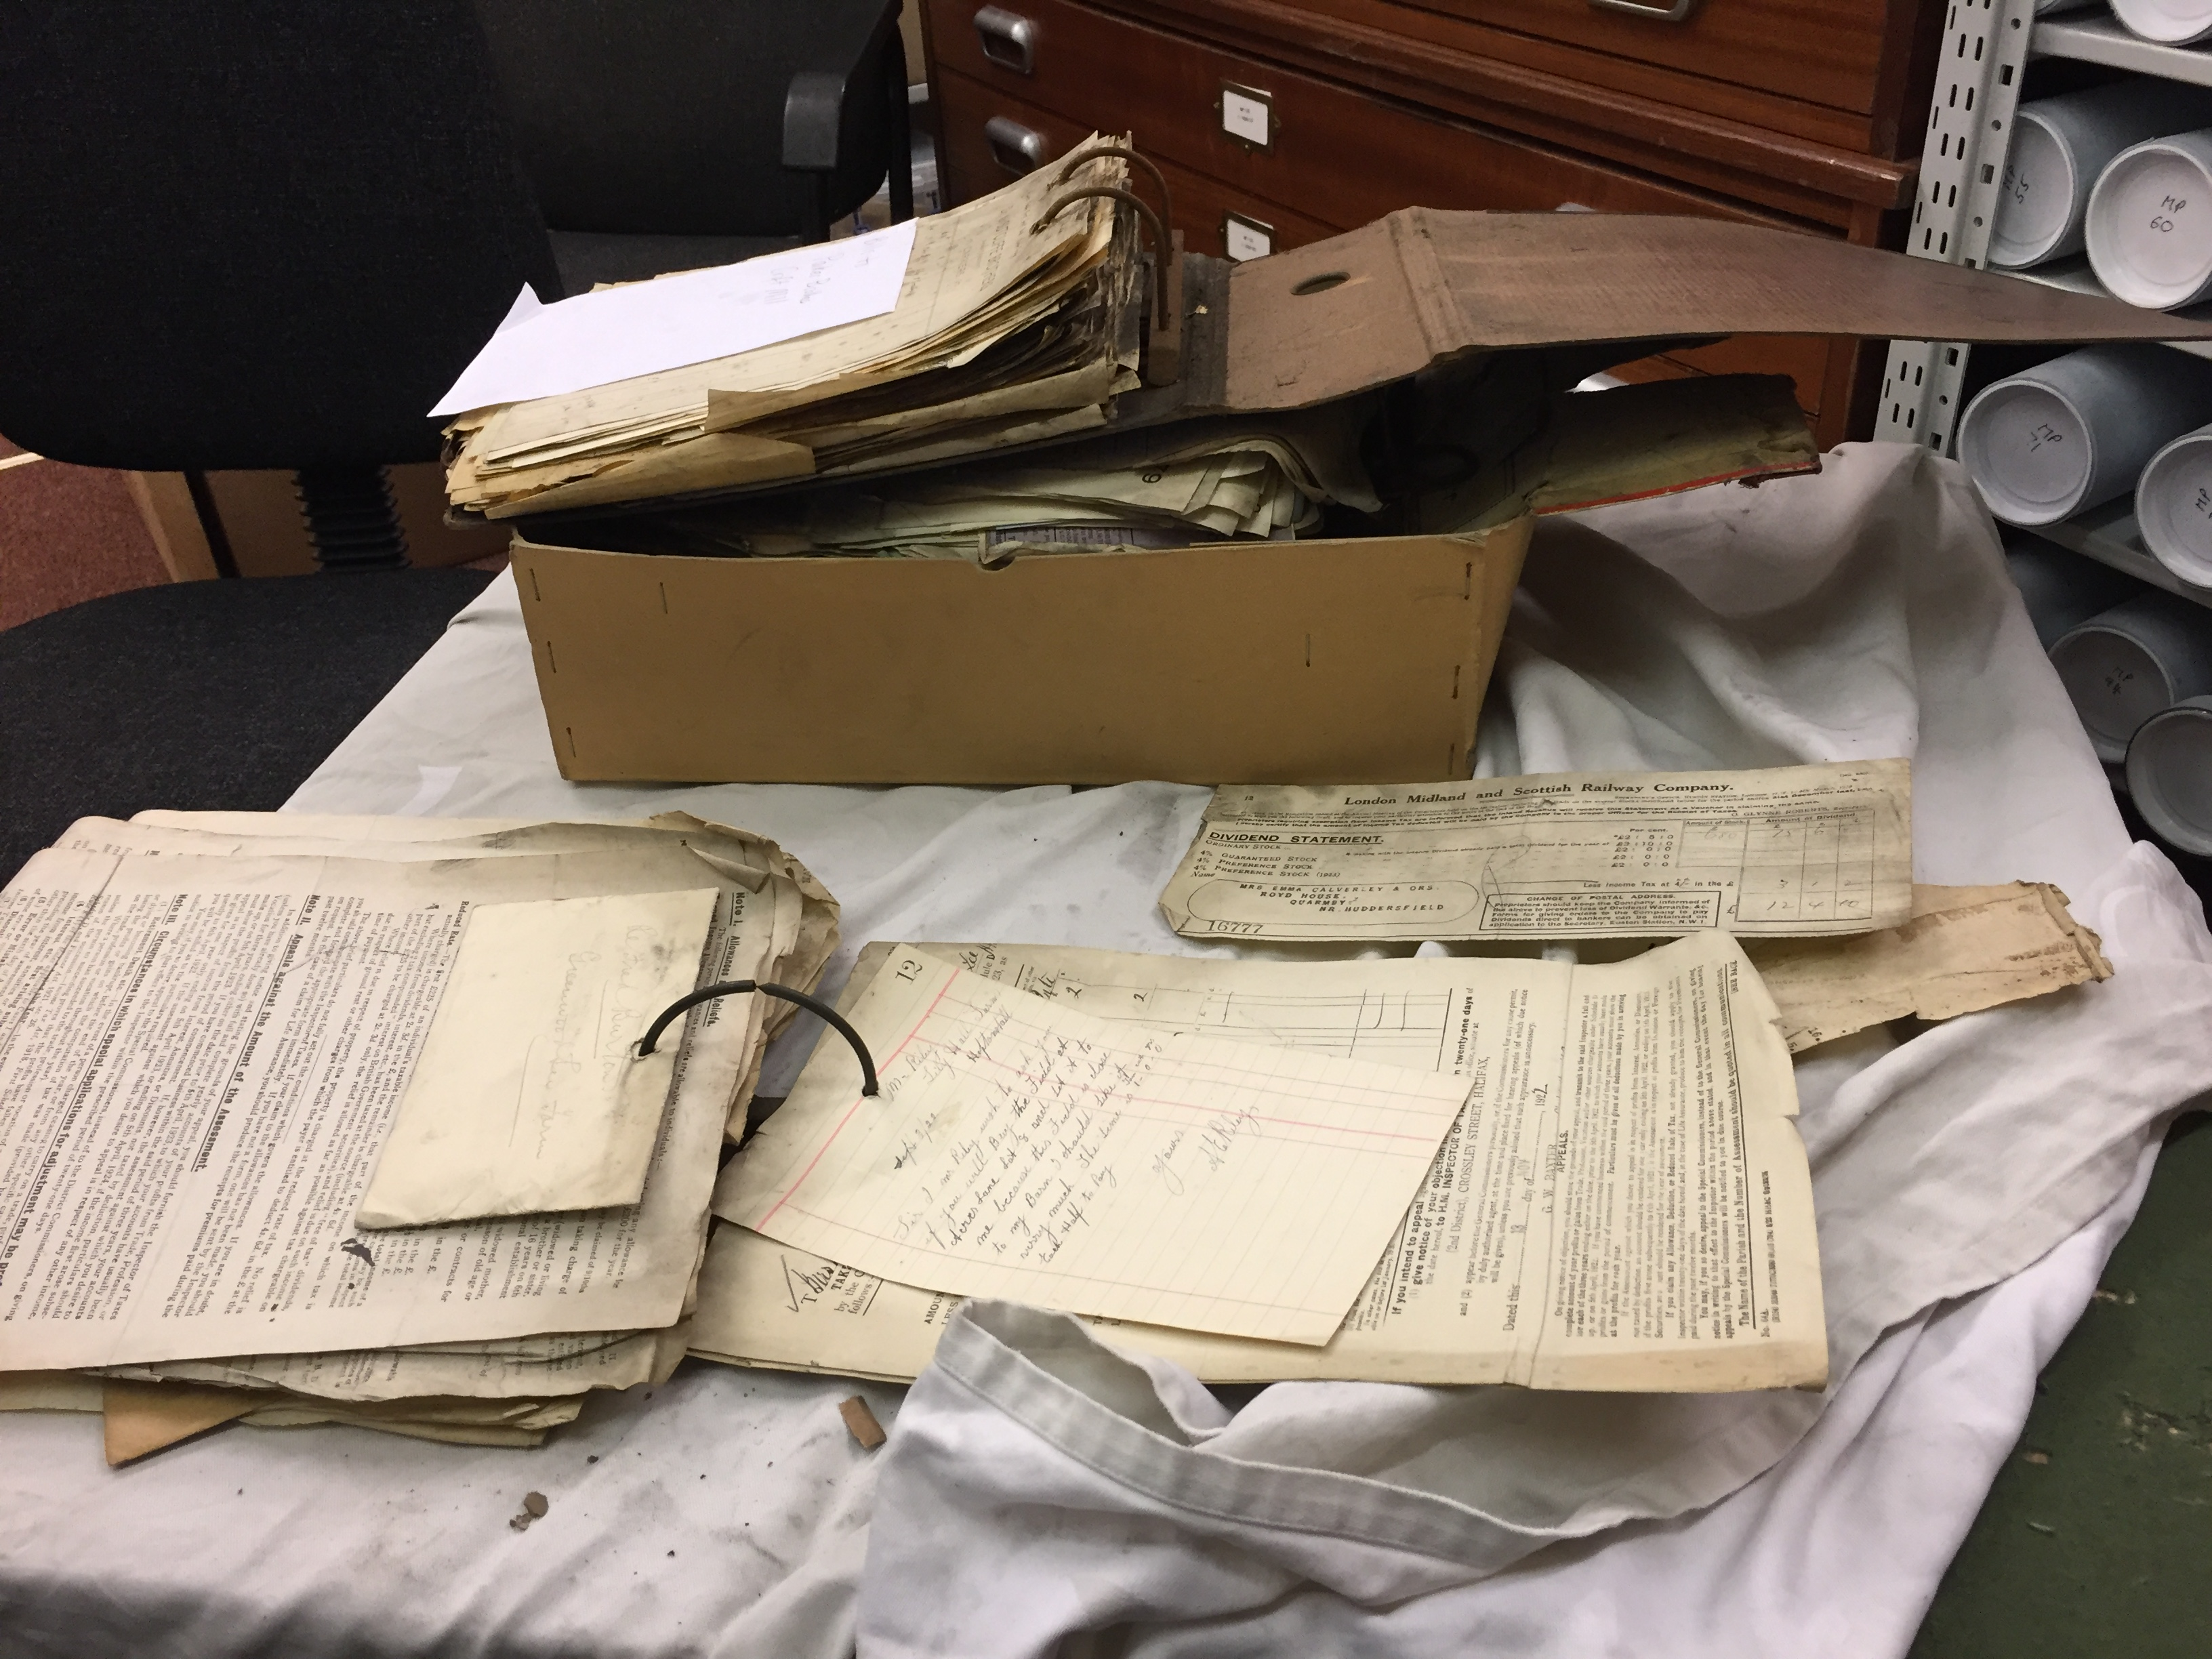 Unearthing the Gibson papers